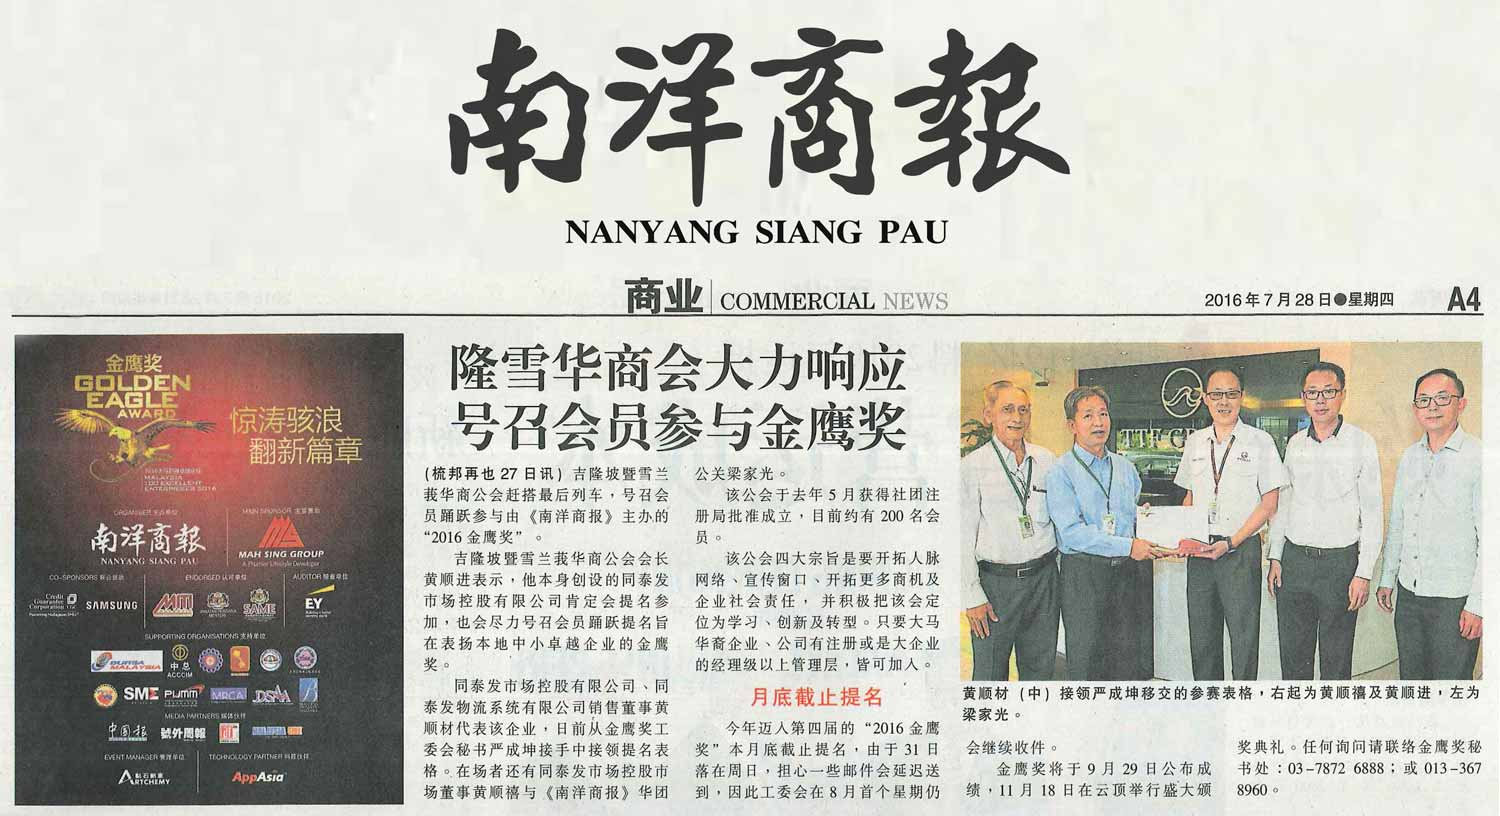 TTF Marketing are participating in Golden Eagle Award 2016 Organized by Nanyang Siang Pau Newspaper